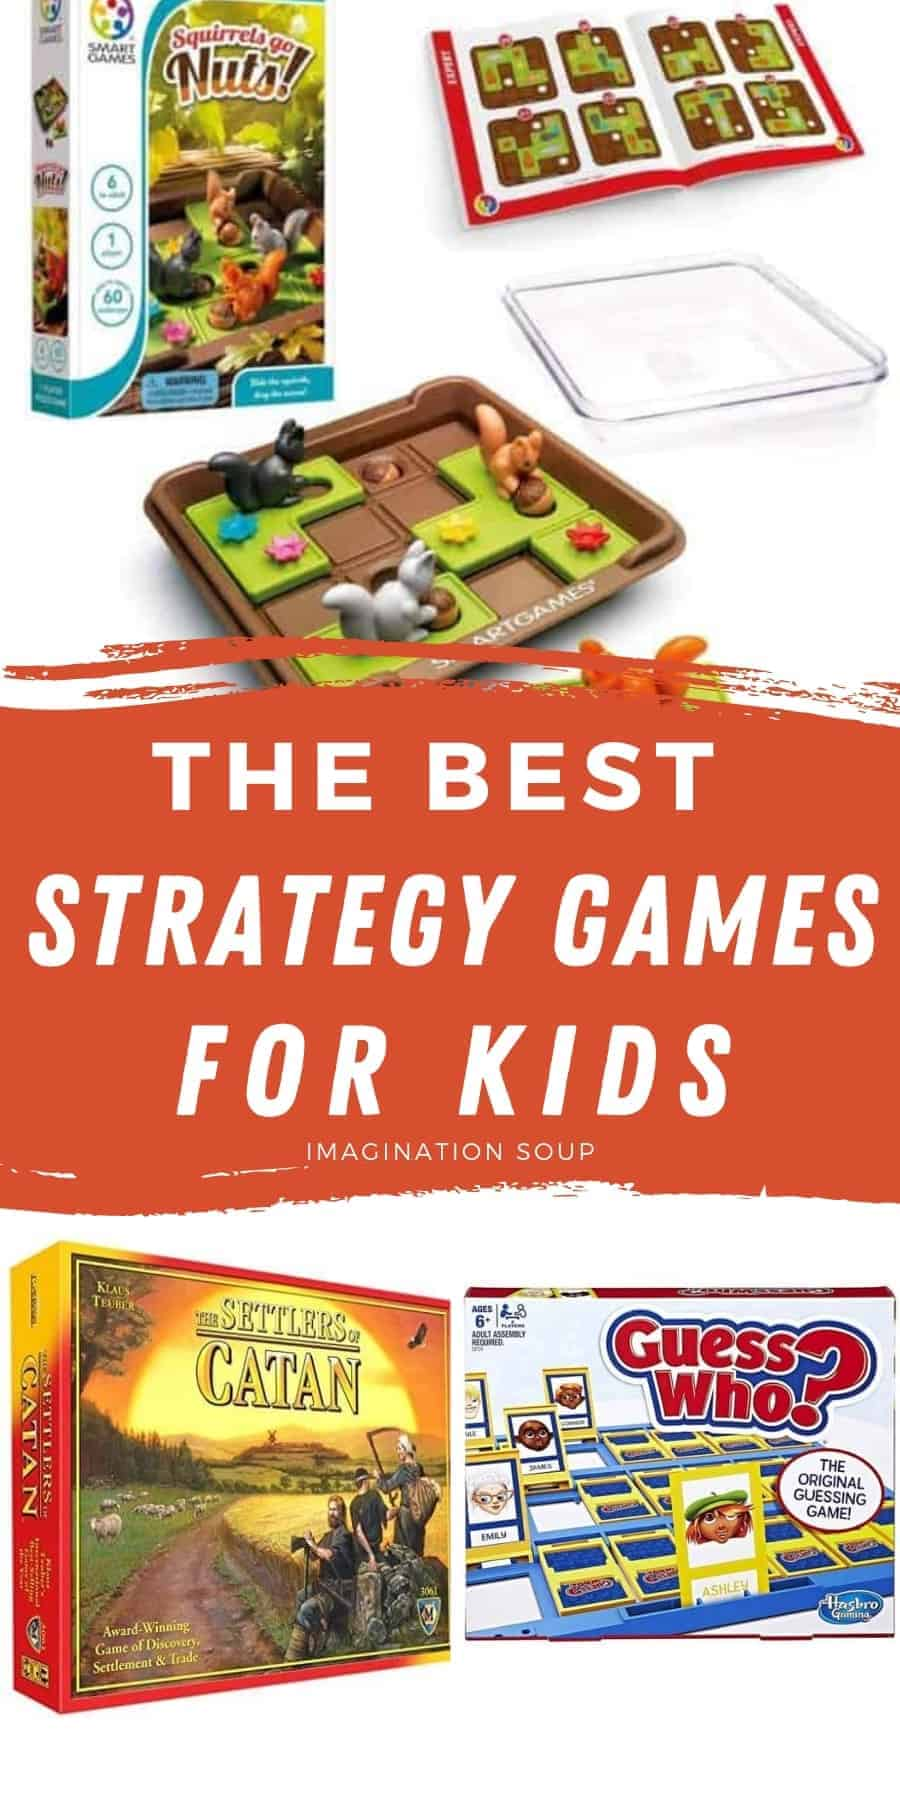 The best strategy games for kids